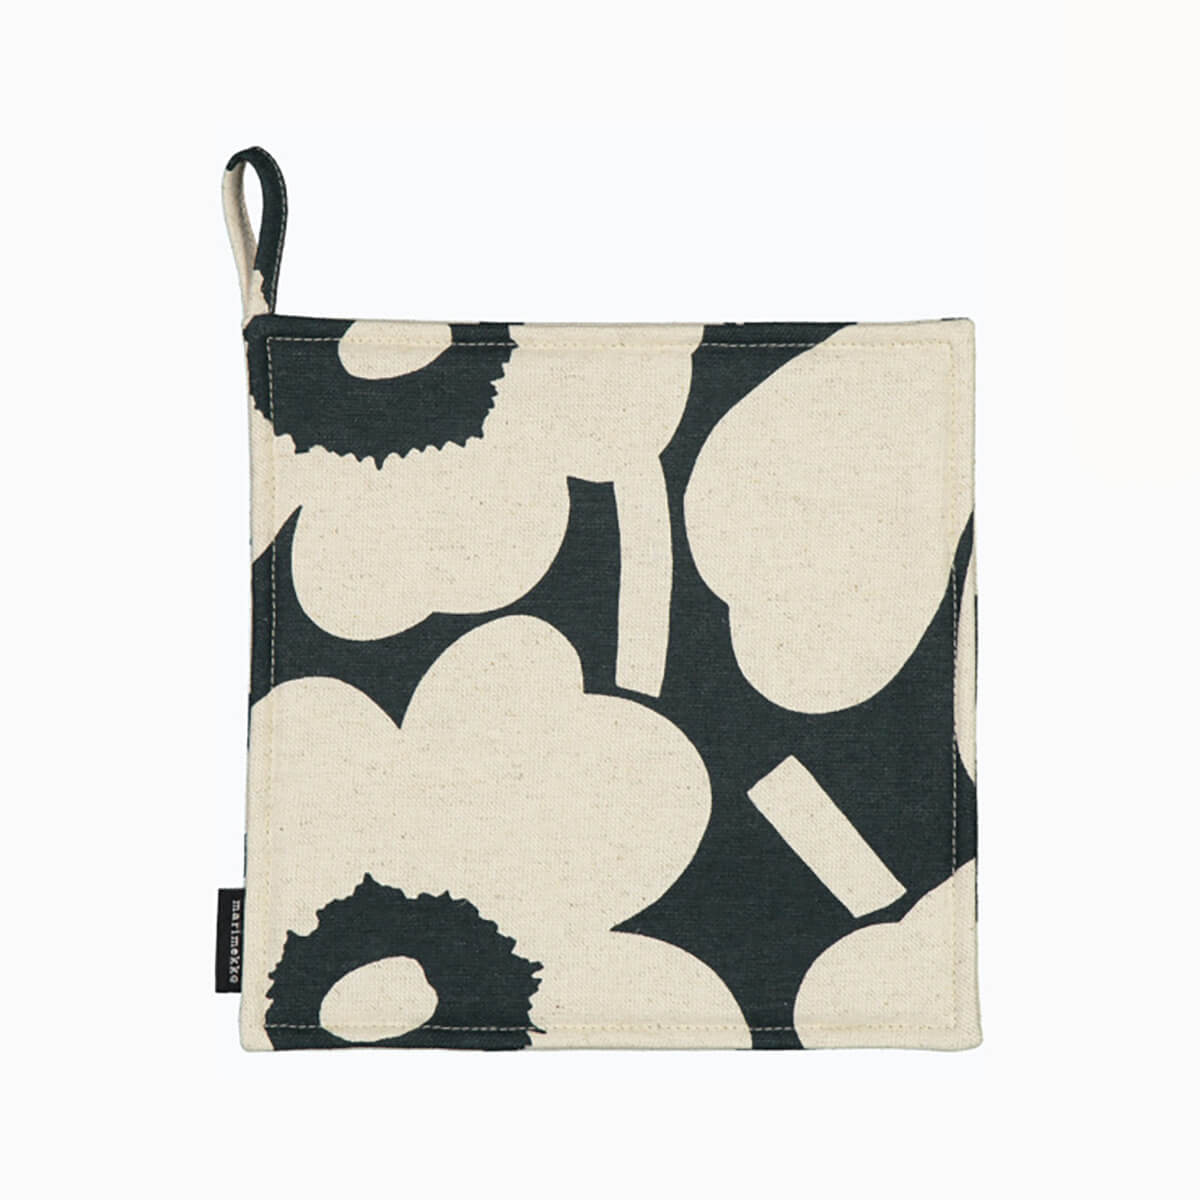 MARIMEKKO  |  PIENI UNIKKO POT HOLDER  |  DARK GREEN